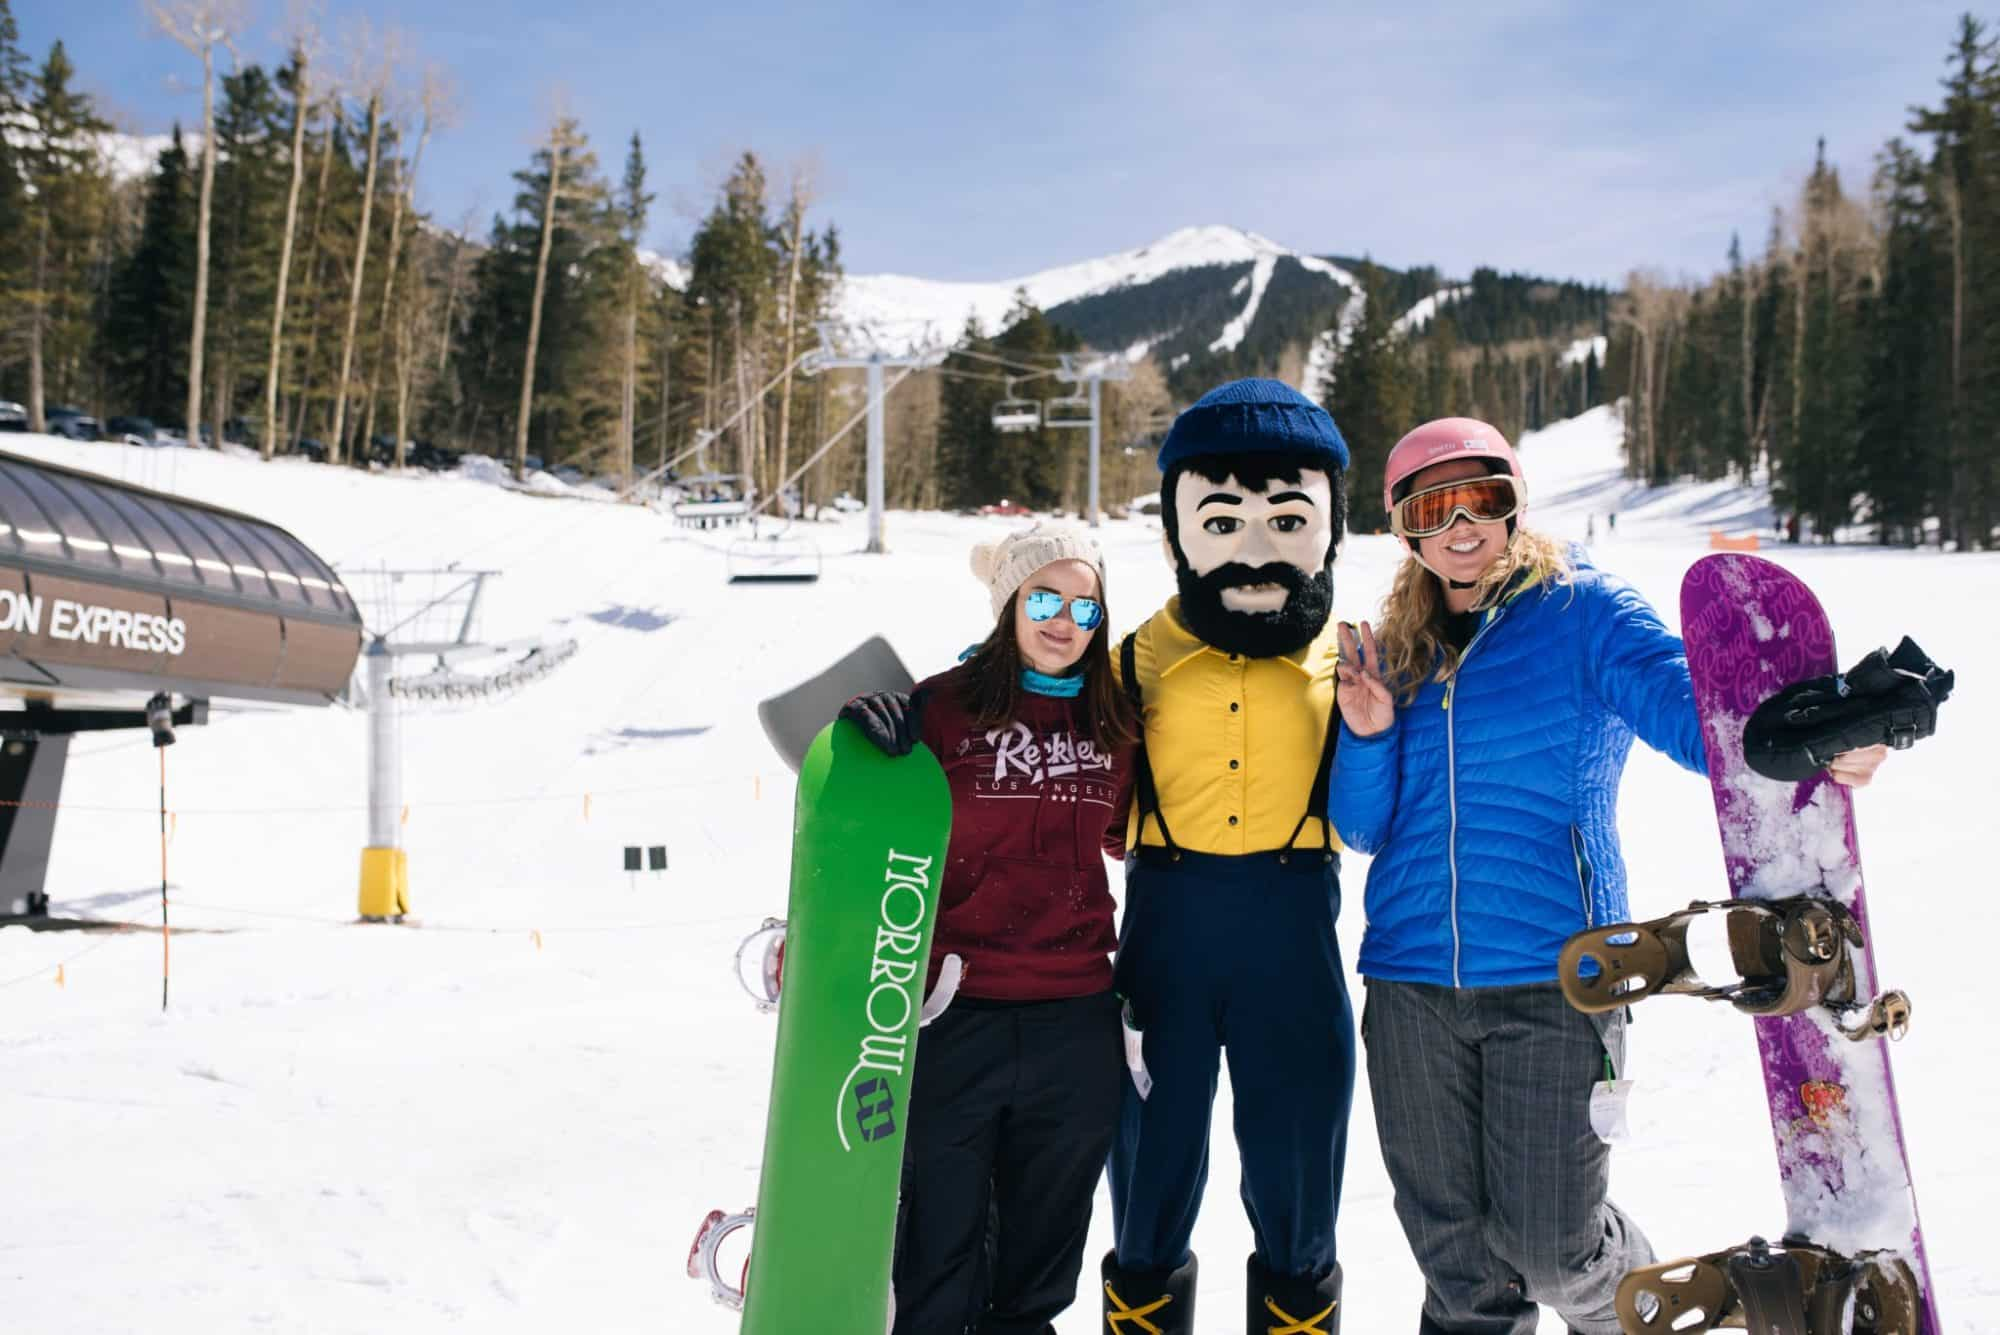 Louie the Lumberjack visit the slopes